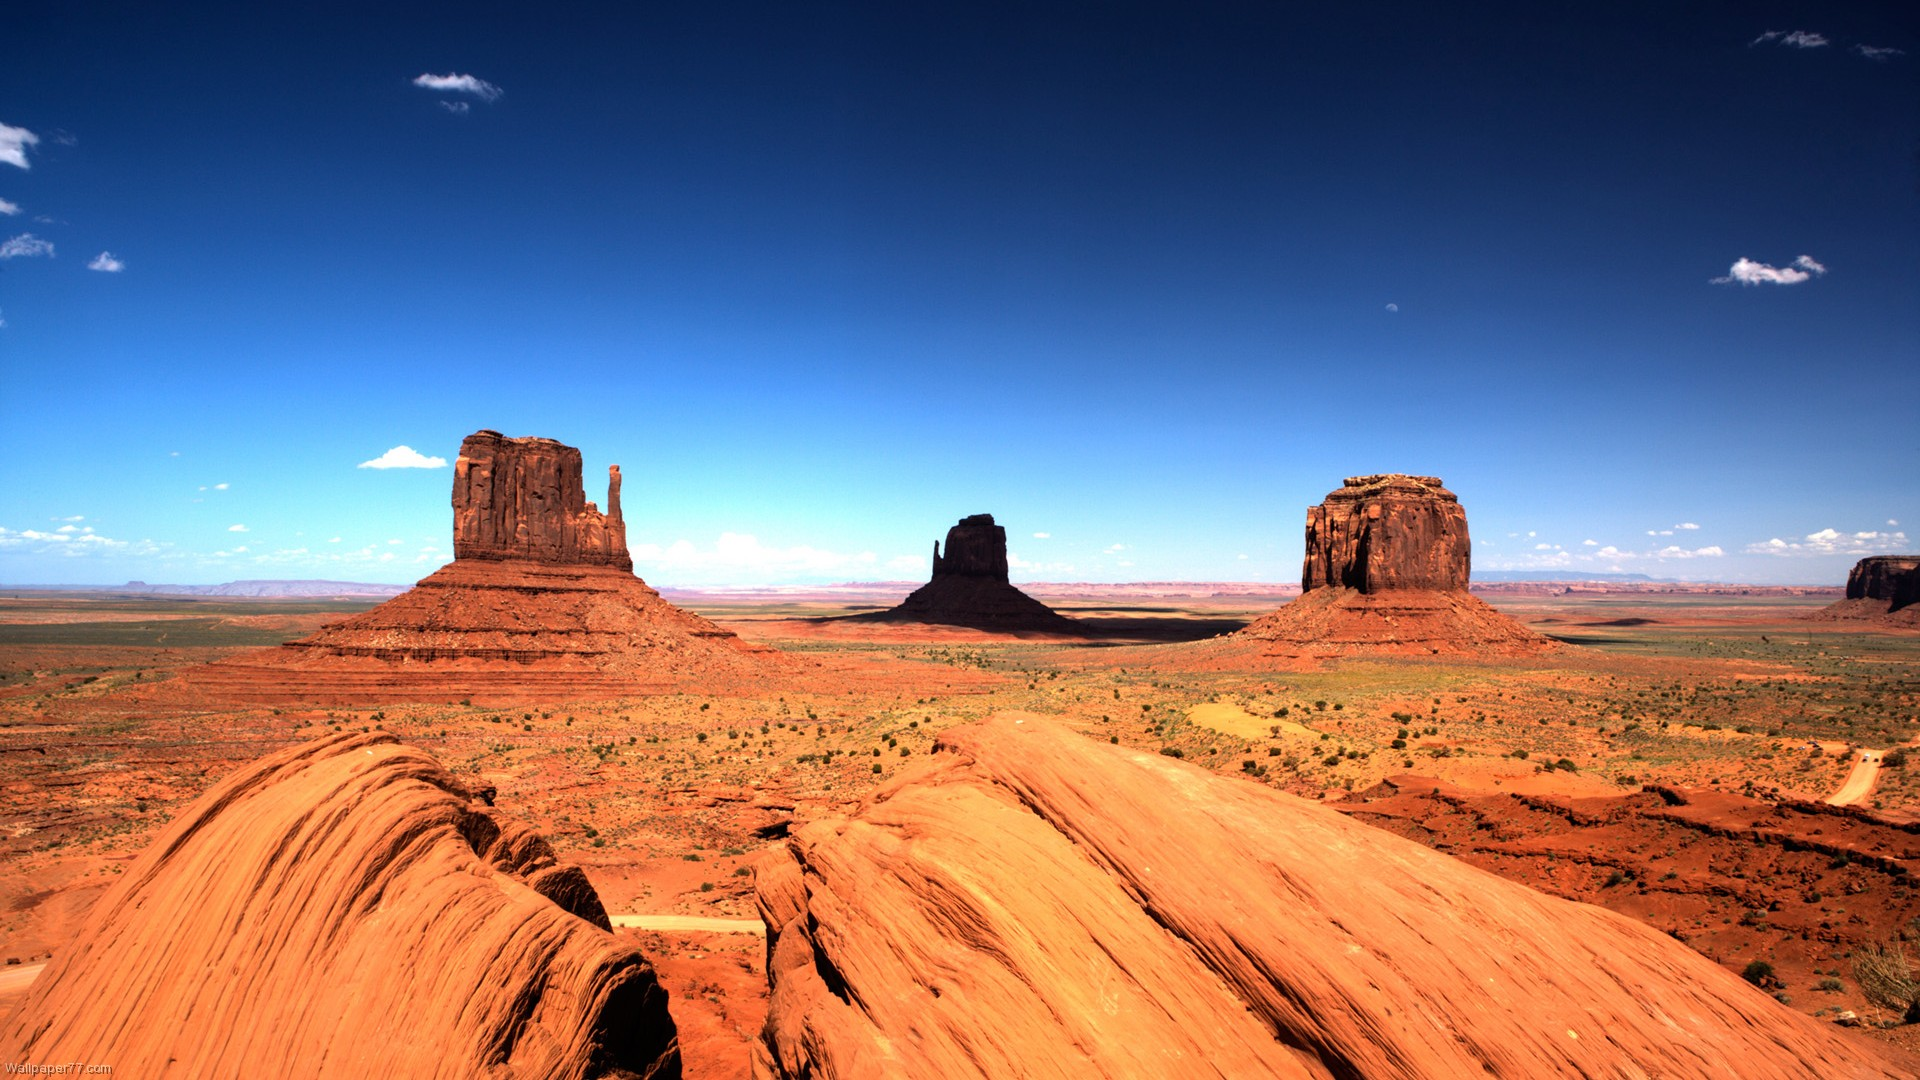 desert landscape wallpaper desert landscapes pictures cool